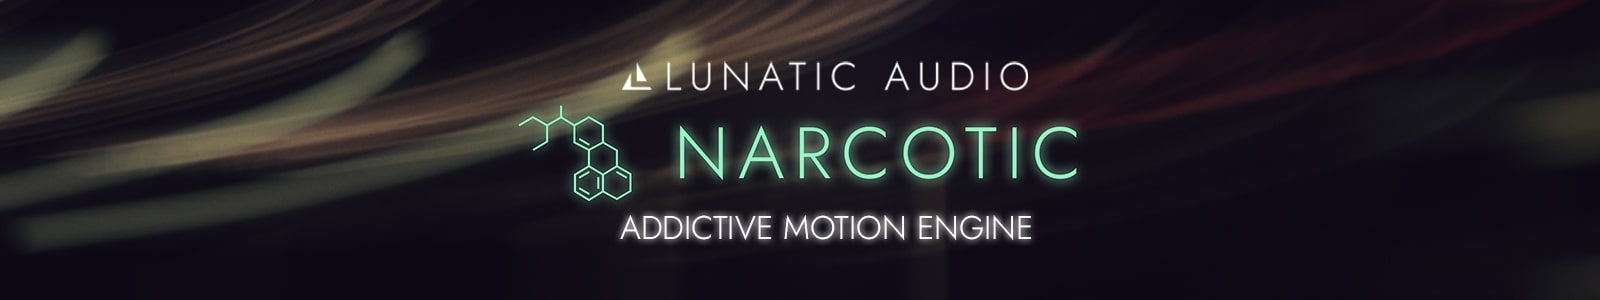 NARCOTIC by lunatic audio